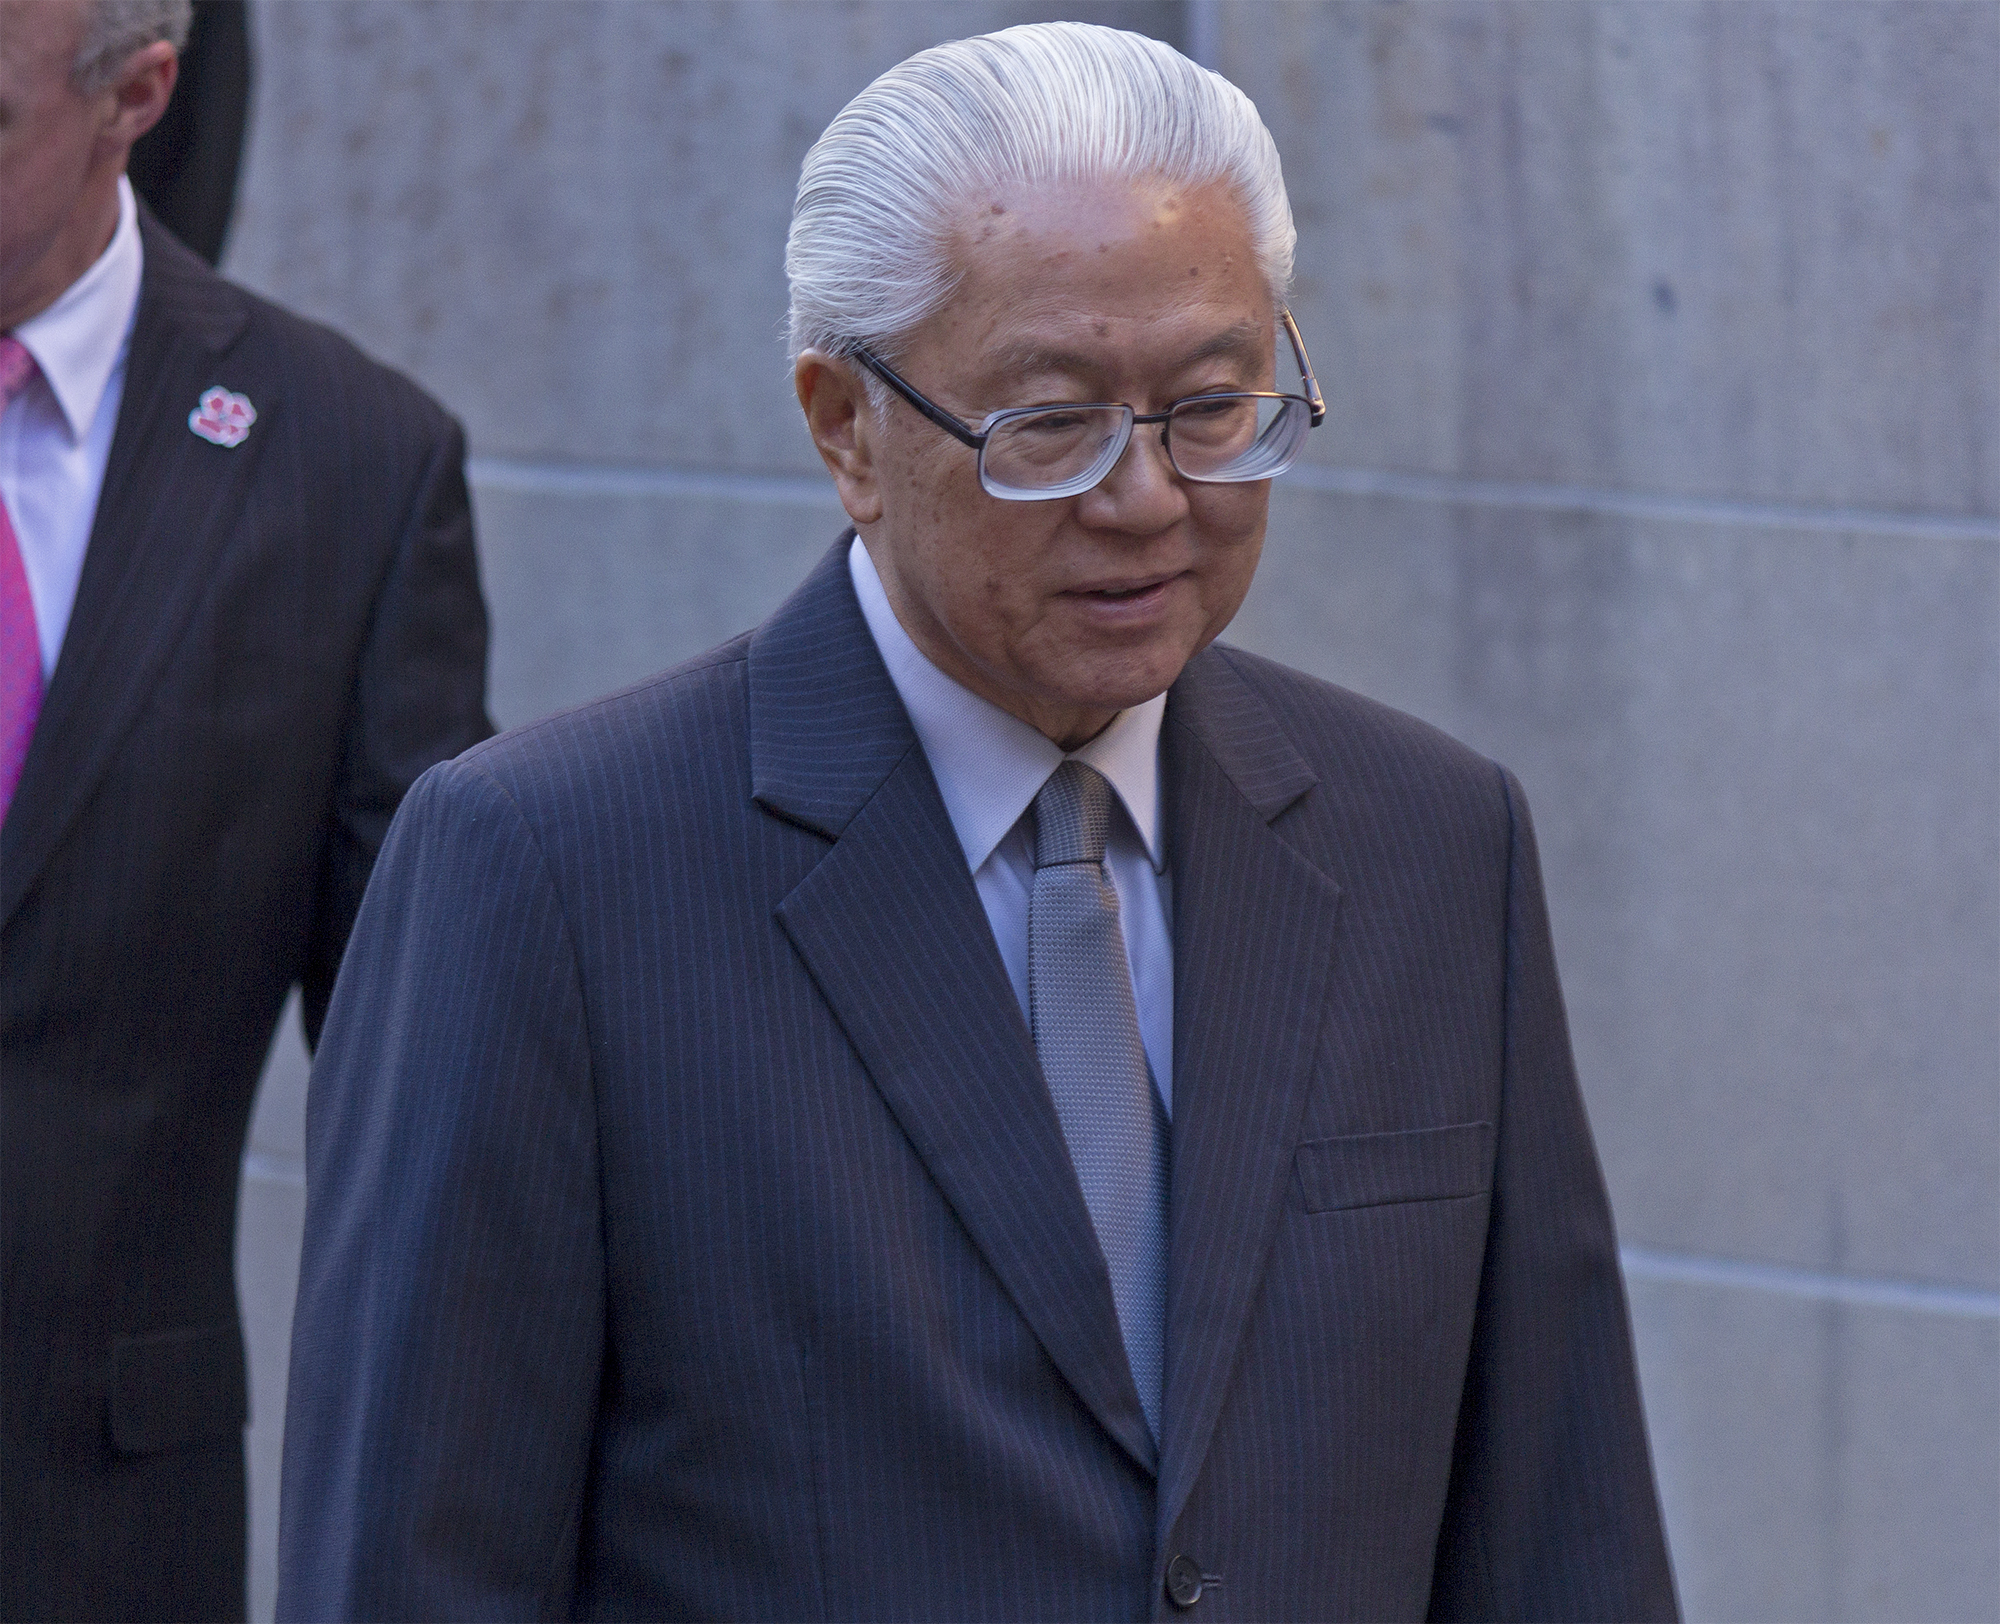 President of Singapore Dr Tony Tan Keng Yam.